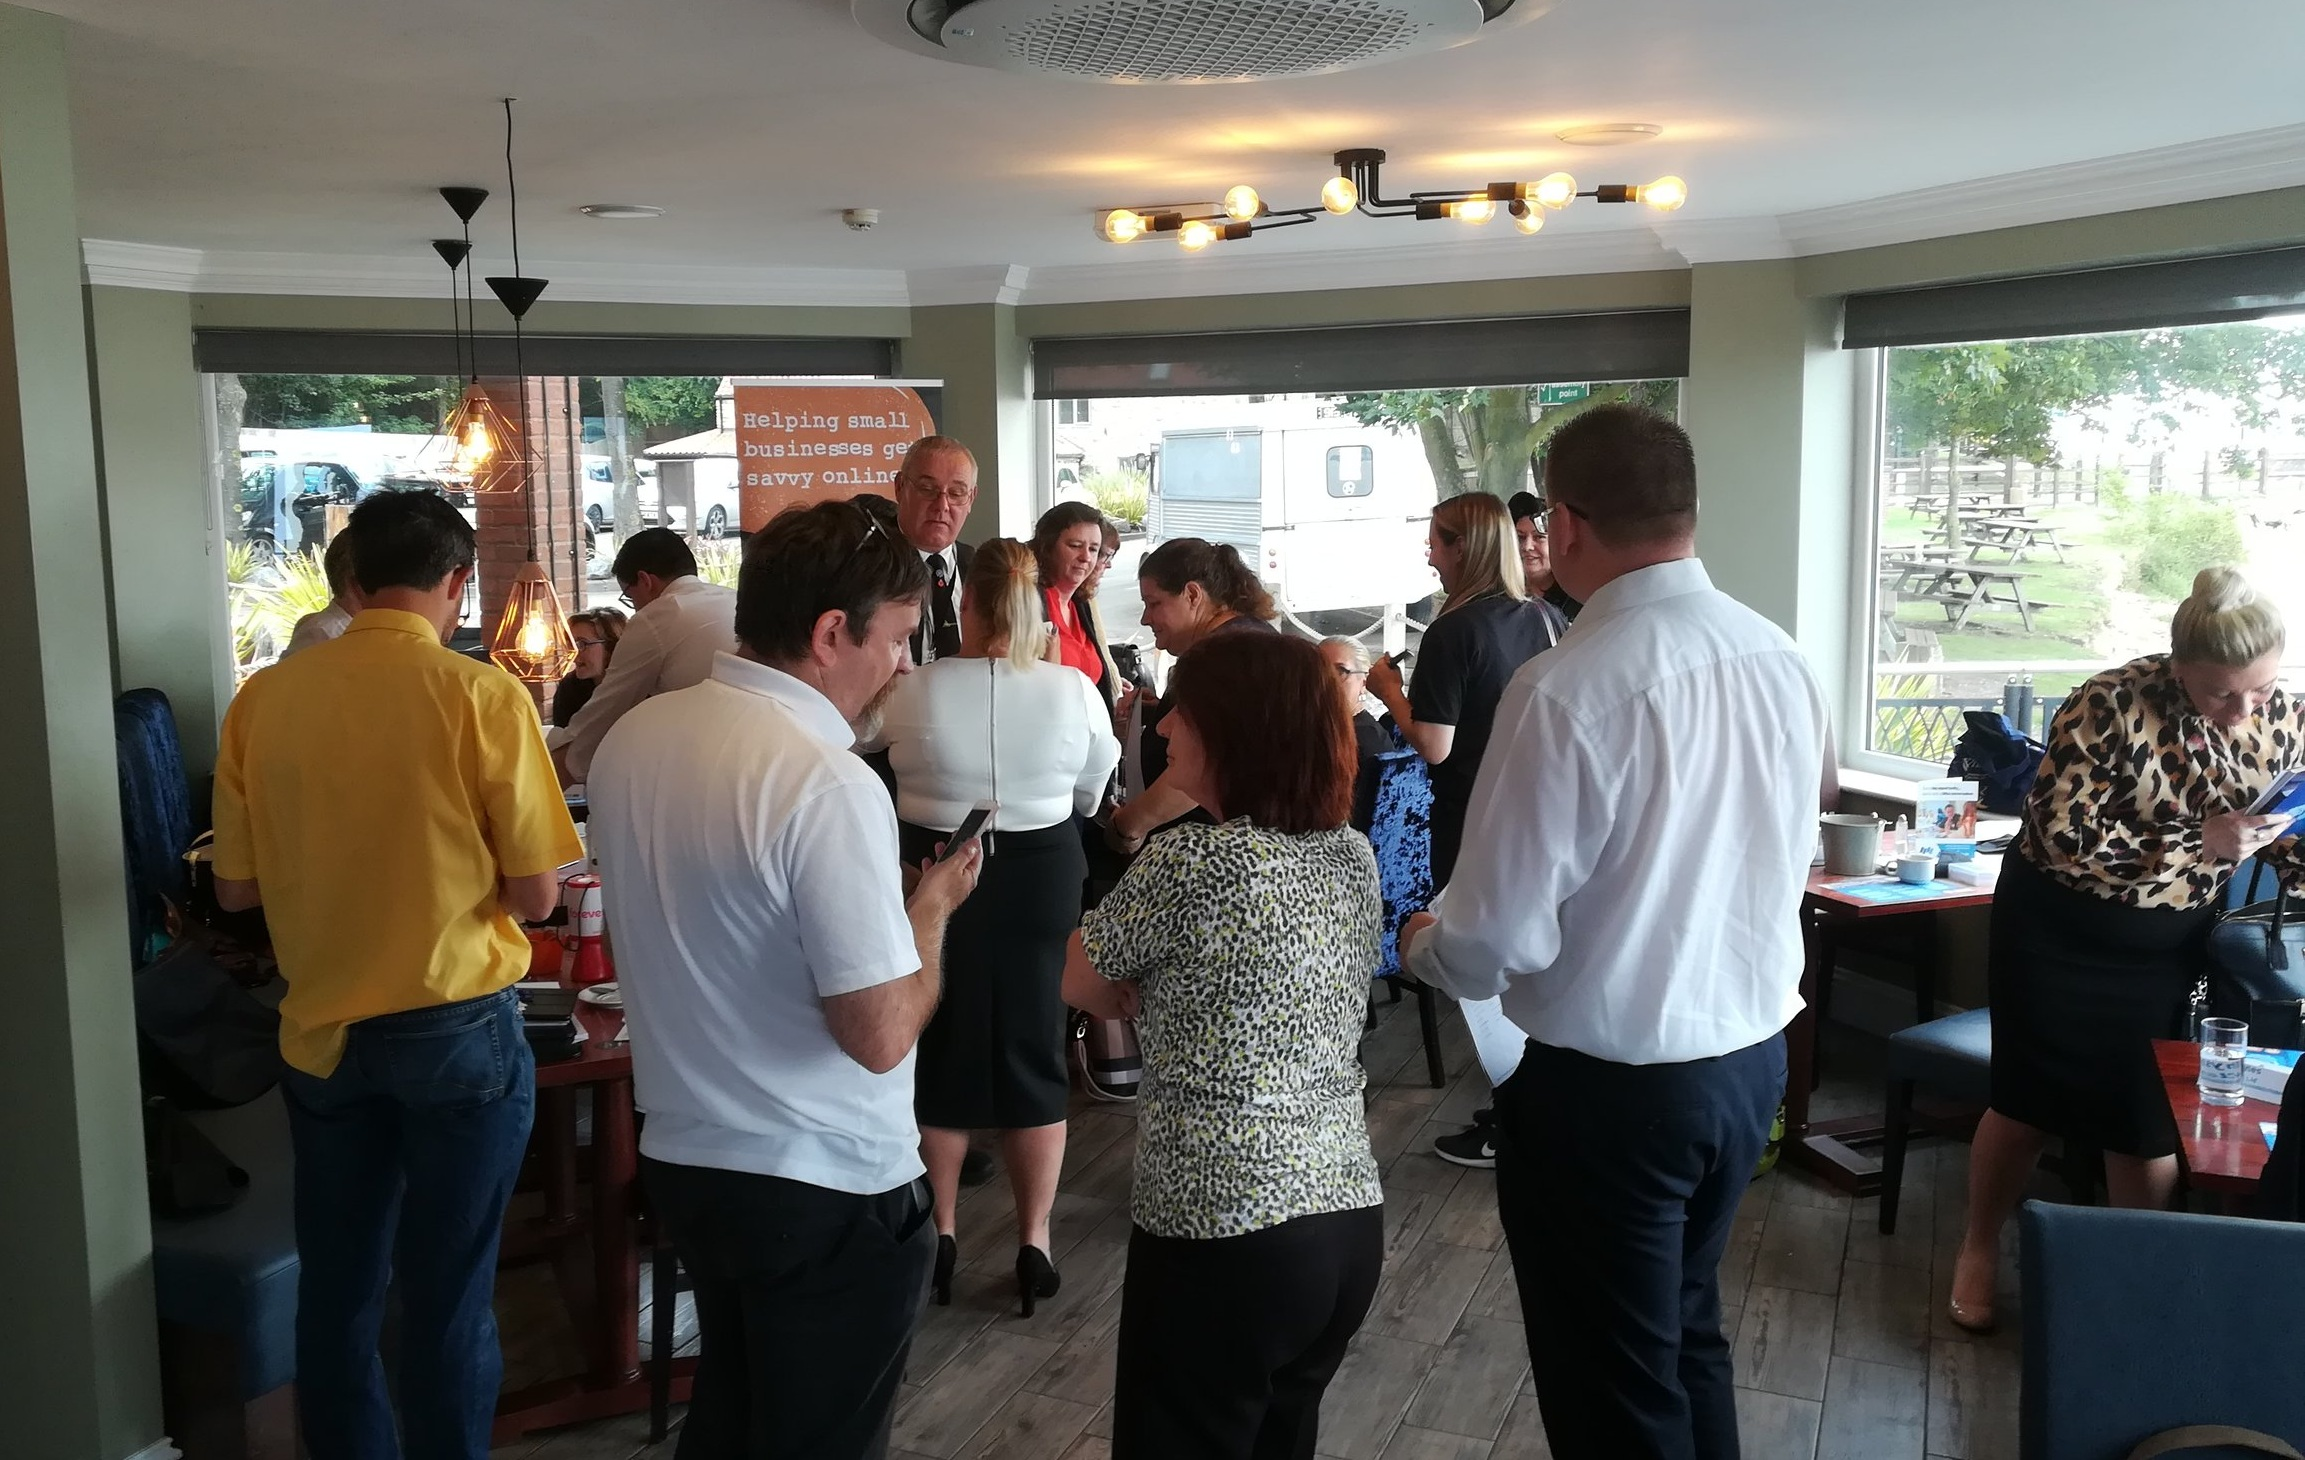 A recent 4networking event I attended.